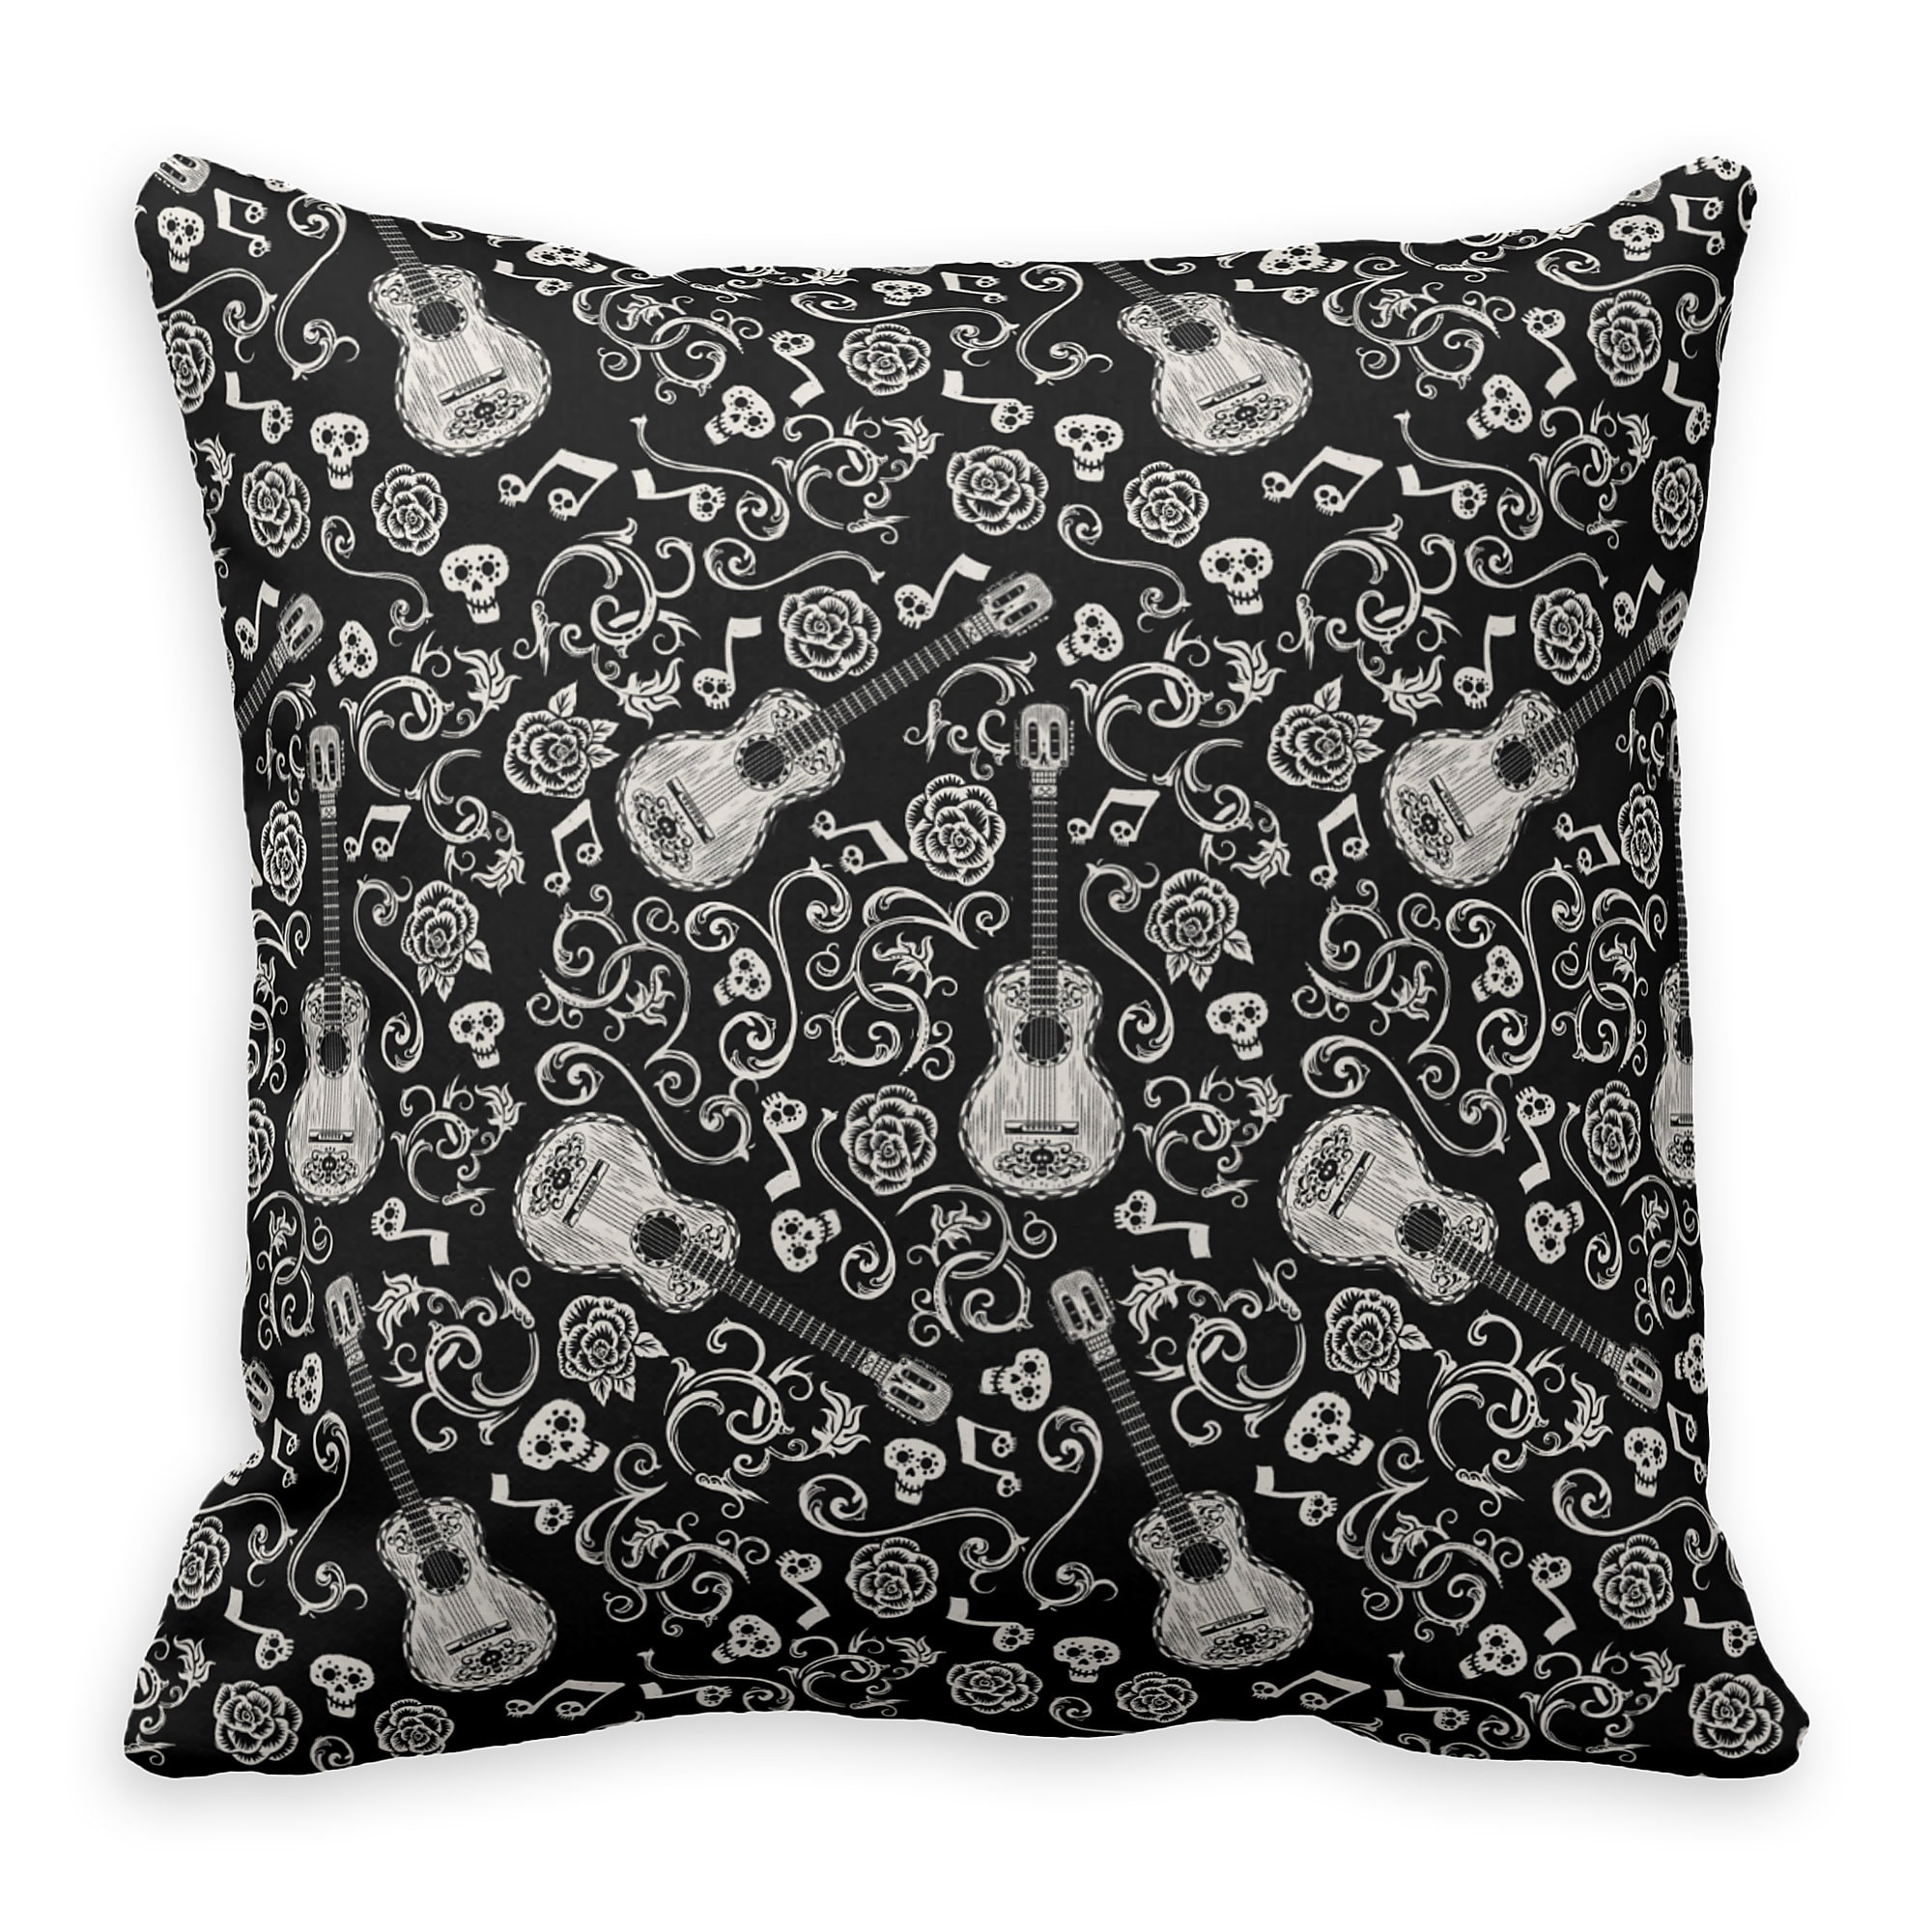 Coco Guitar&Rose Pattern Throw Pillow - Customizable